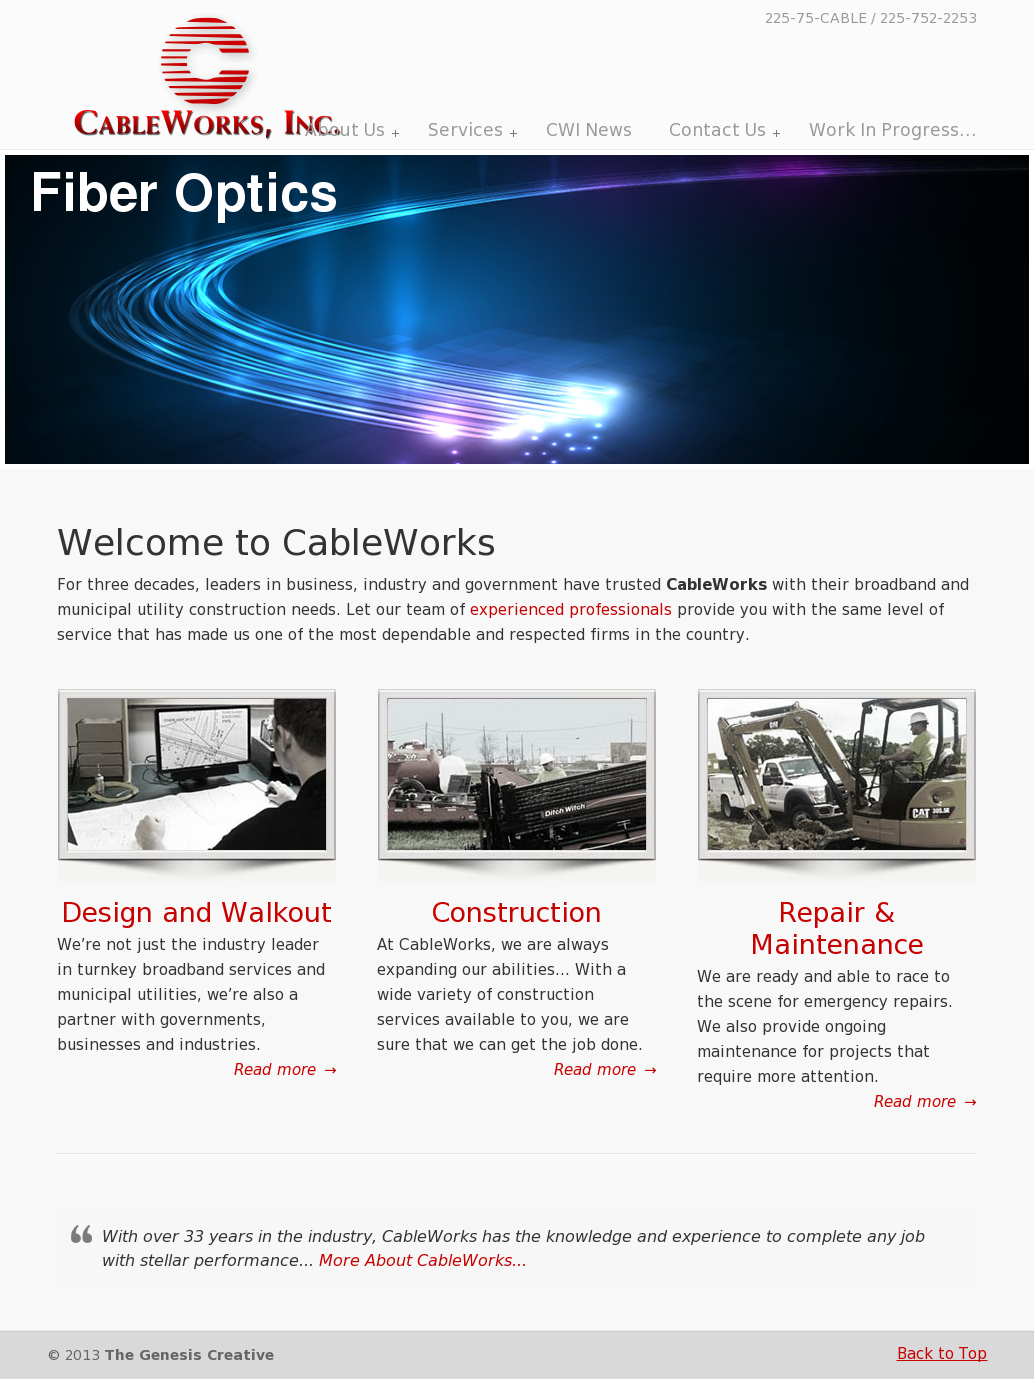 Cable Works Competitors, Revenue and Employees - Owler